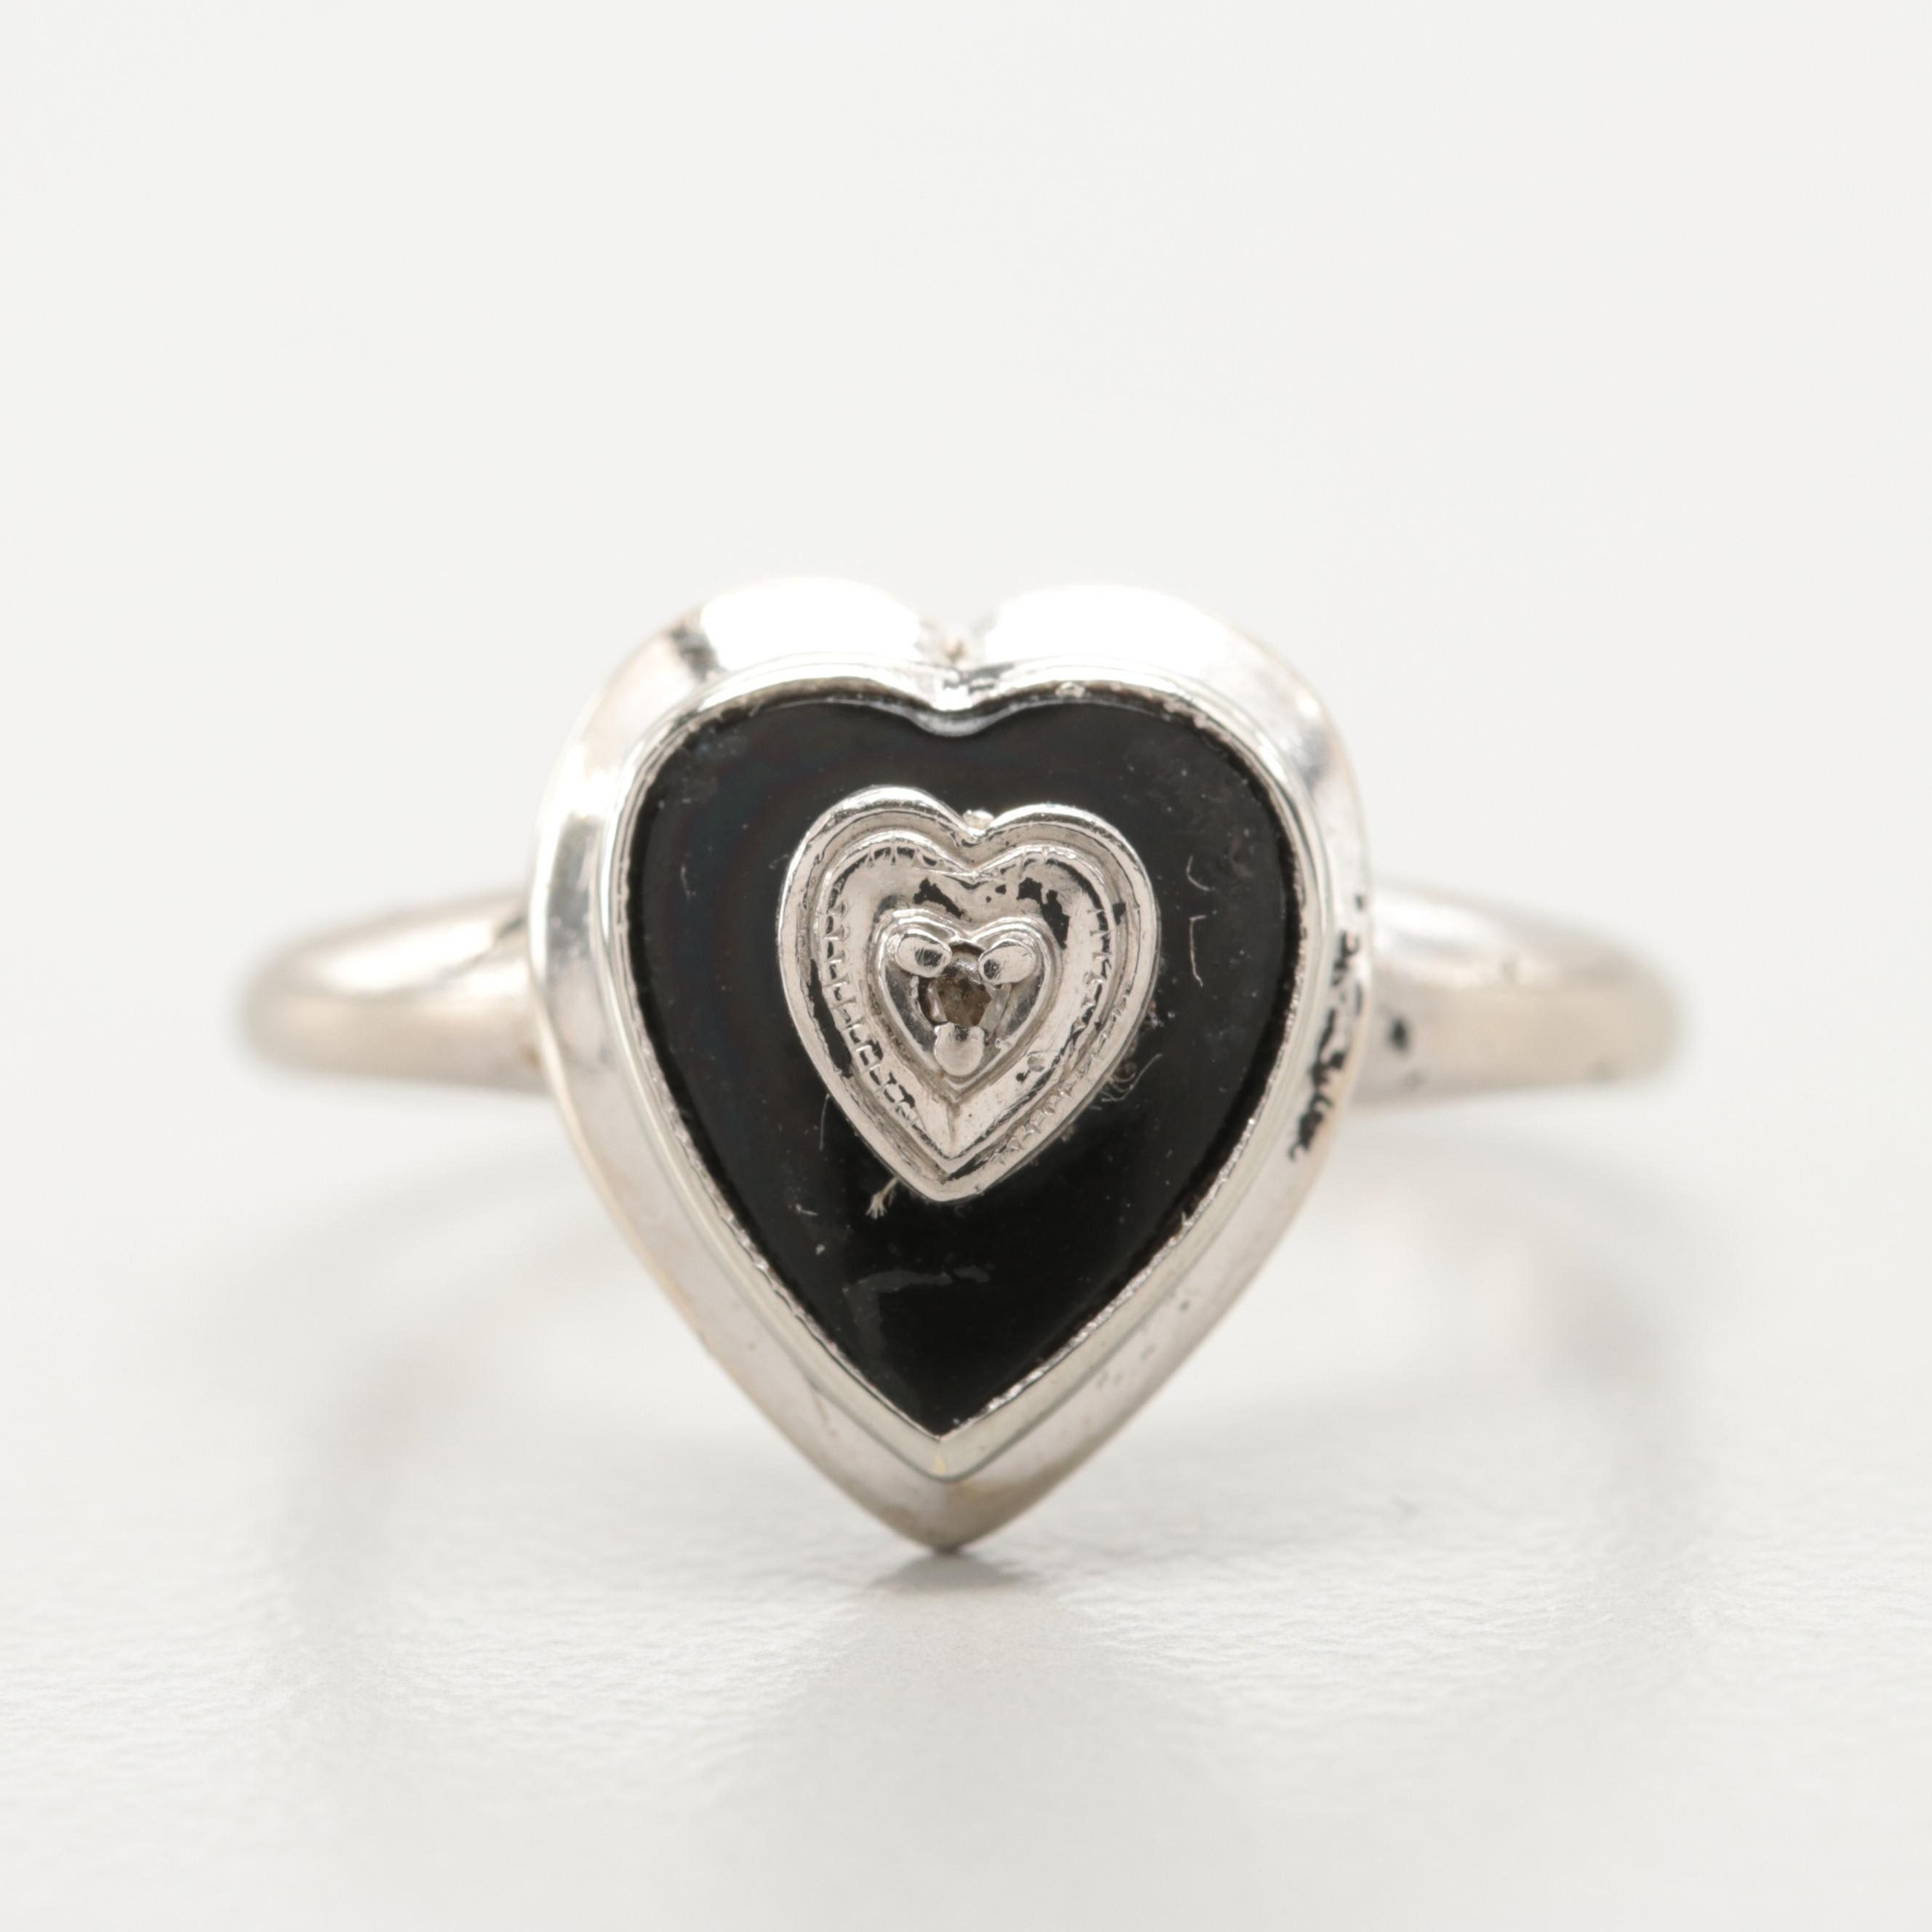 10K White Gold Diamond and Black Onyx Heart Ring with Palladium Accent